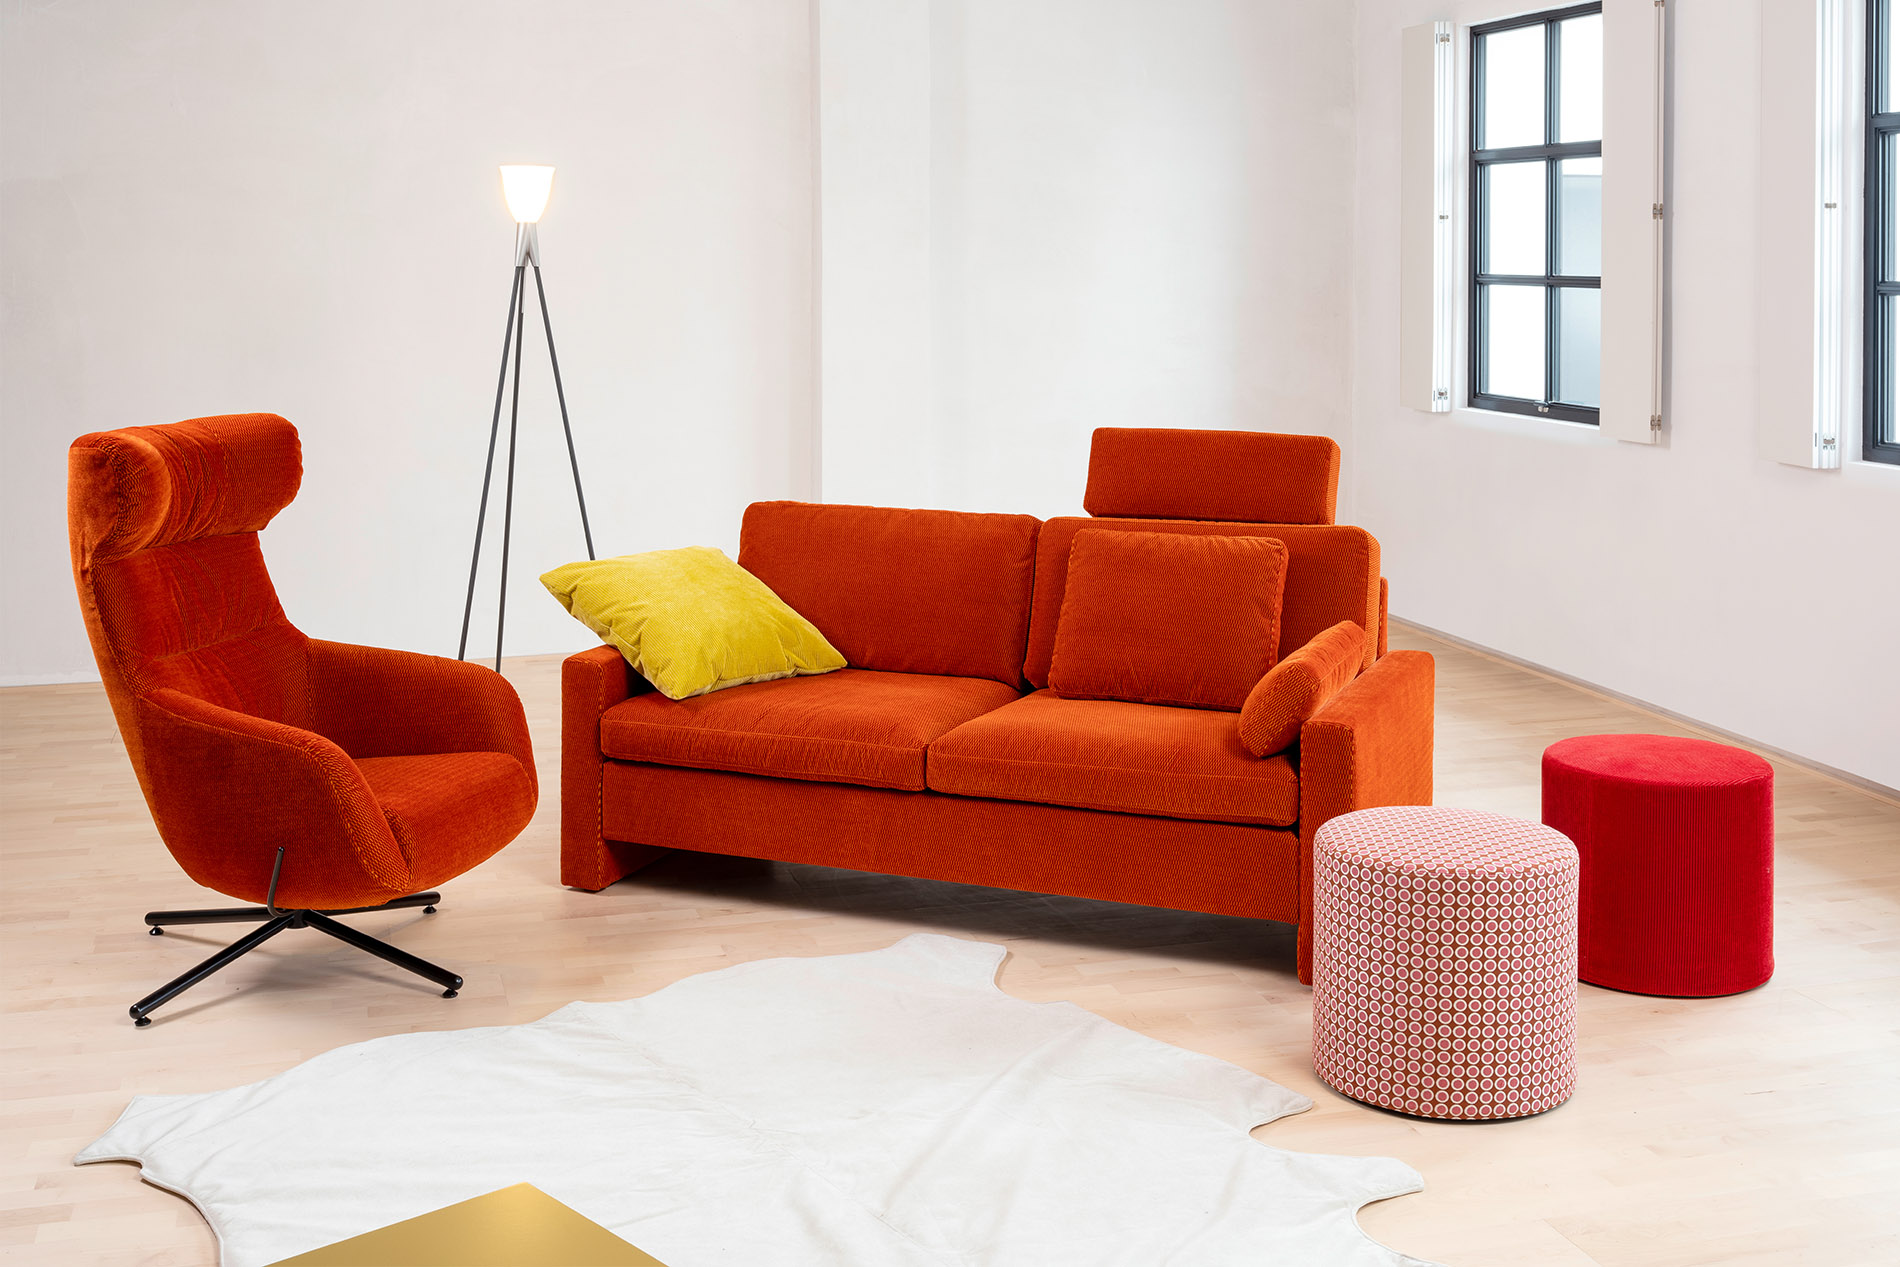 schlafsofa breite 150 fabulous sofa cm breit schlafsofa breite qanirtuuq co with schlafsofa. Black Bedroom Furniture Sets. Home Design Ideas